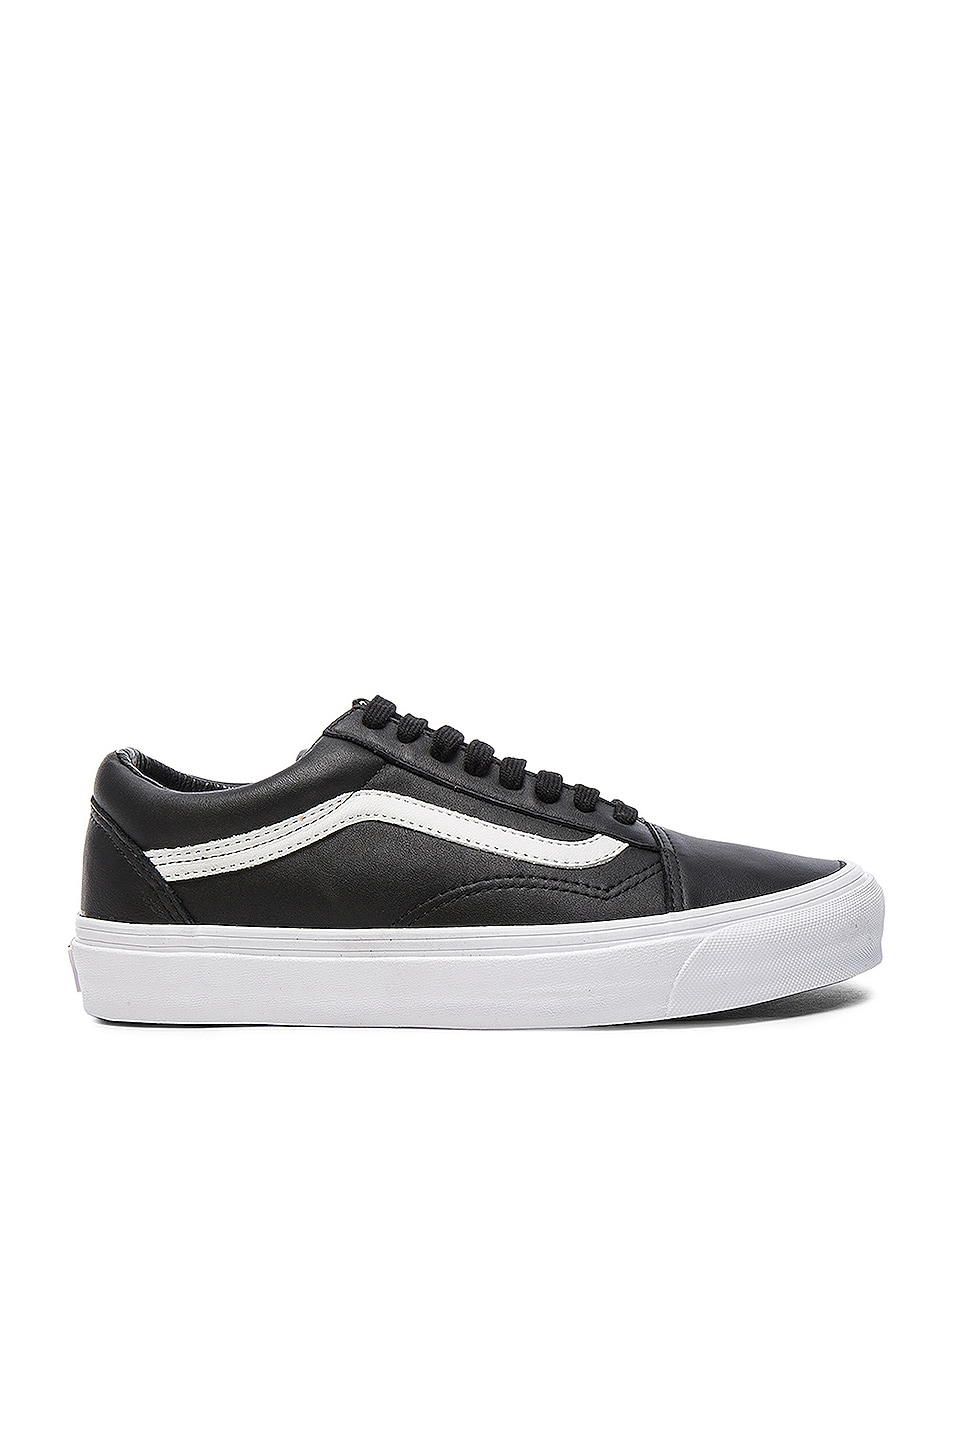 ca44d94db0 Image 1 of Vans Vault OG Leather Old Skool LX in Black